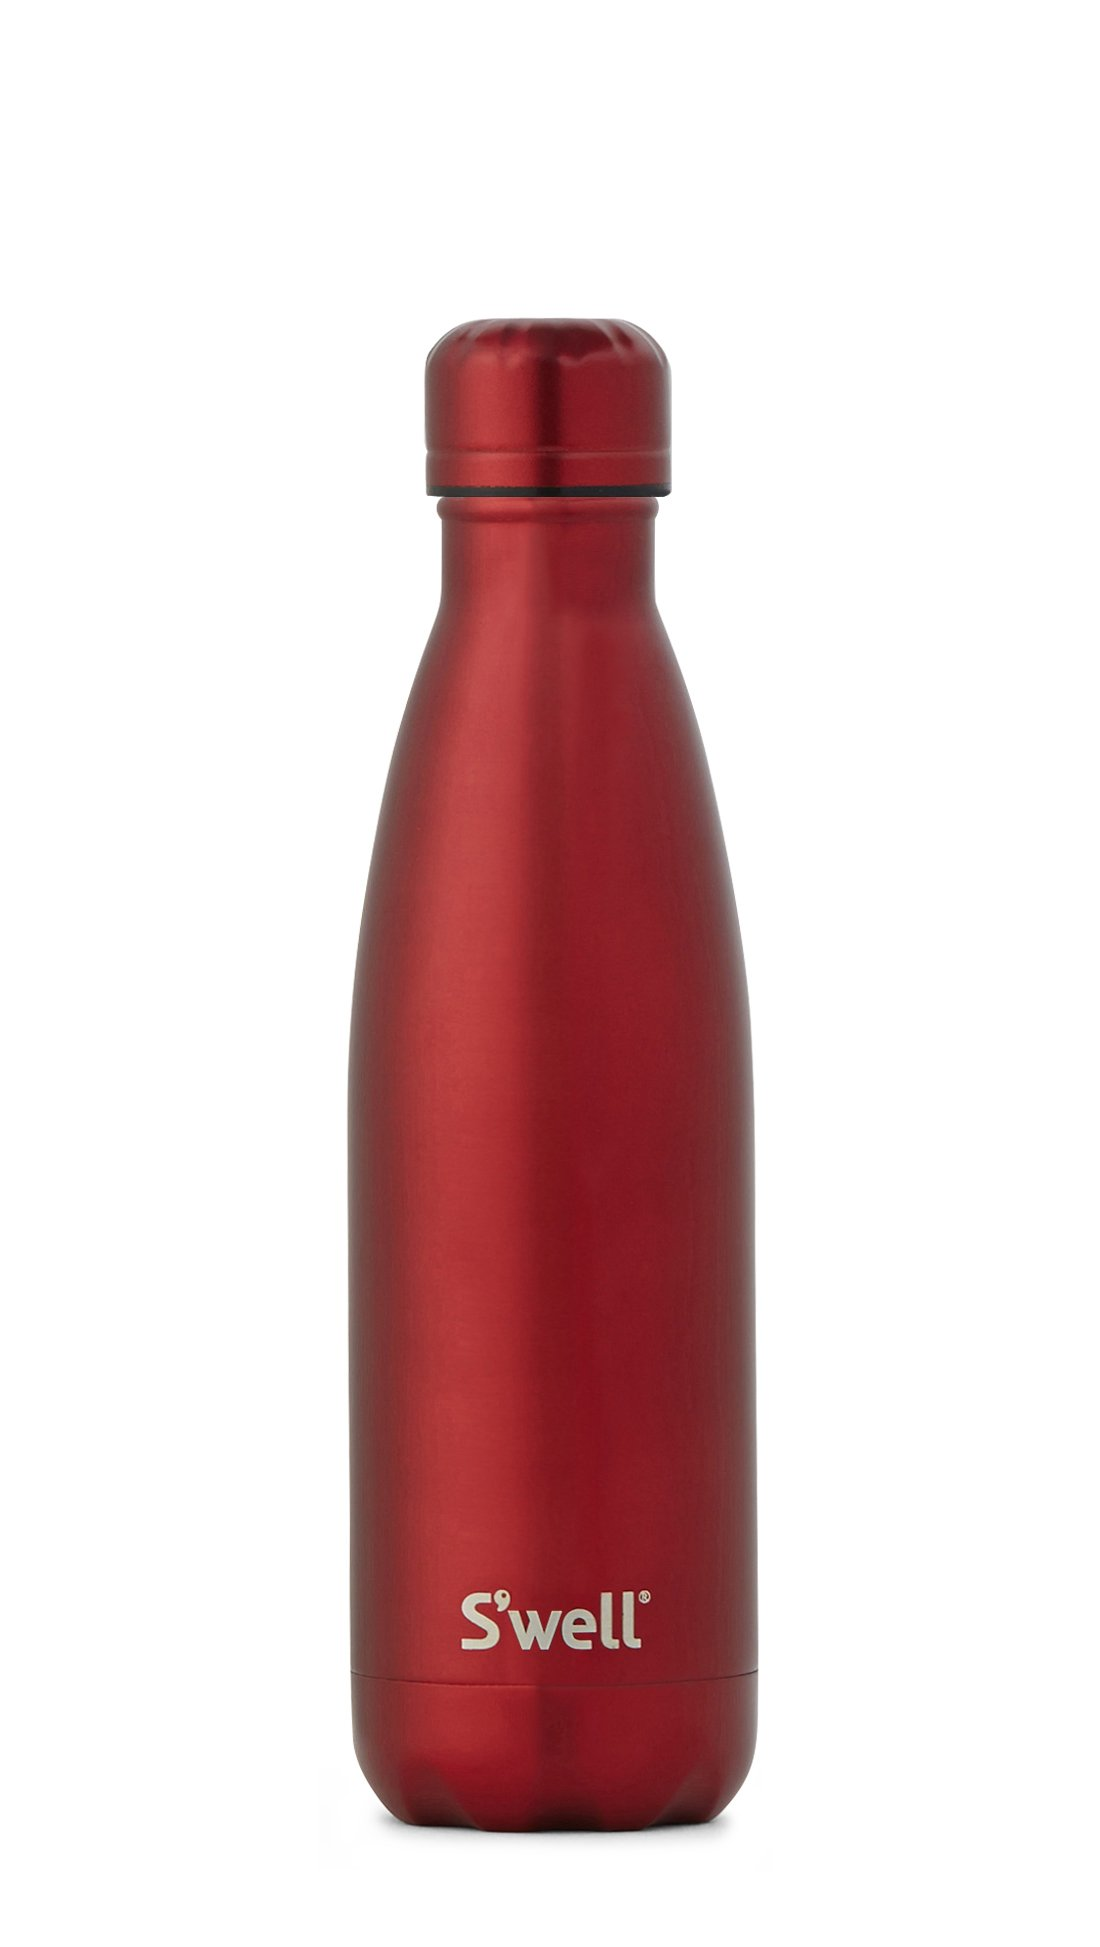 S'well Vacuum Insulated Stainless Steel Water Bottle, 17 oz, Ruby by S'well